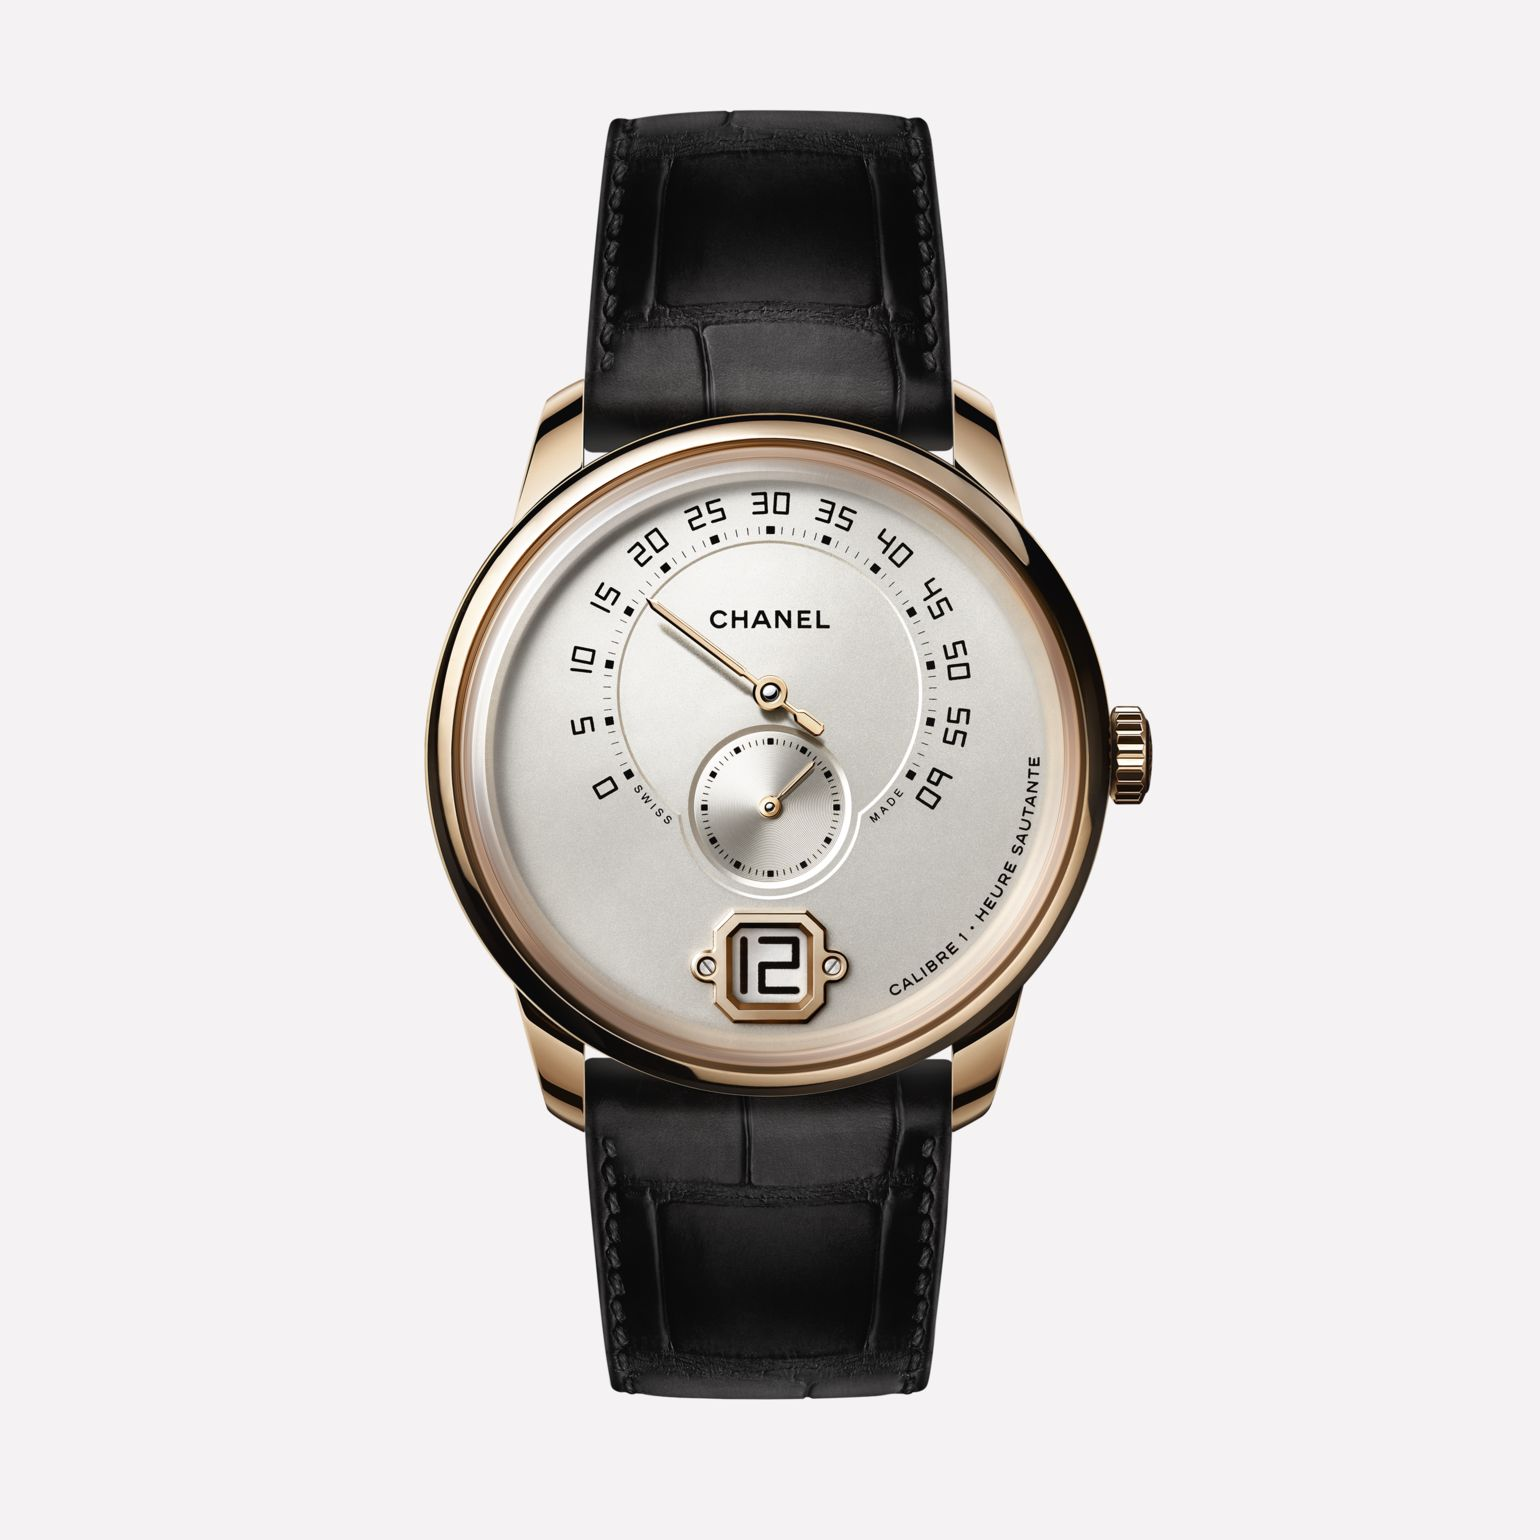 Monsieur Watch BEIGE GOLD, opaline dial with jumping hour, 240° retrograde minute and small second counter